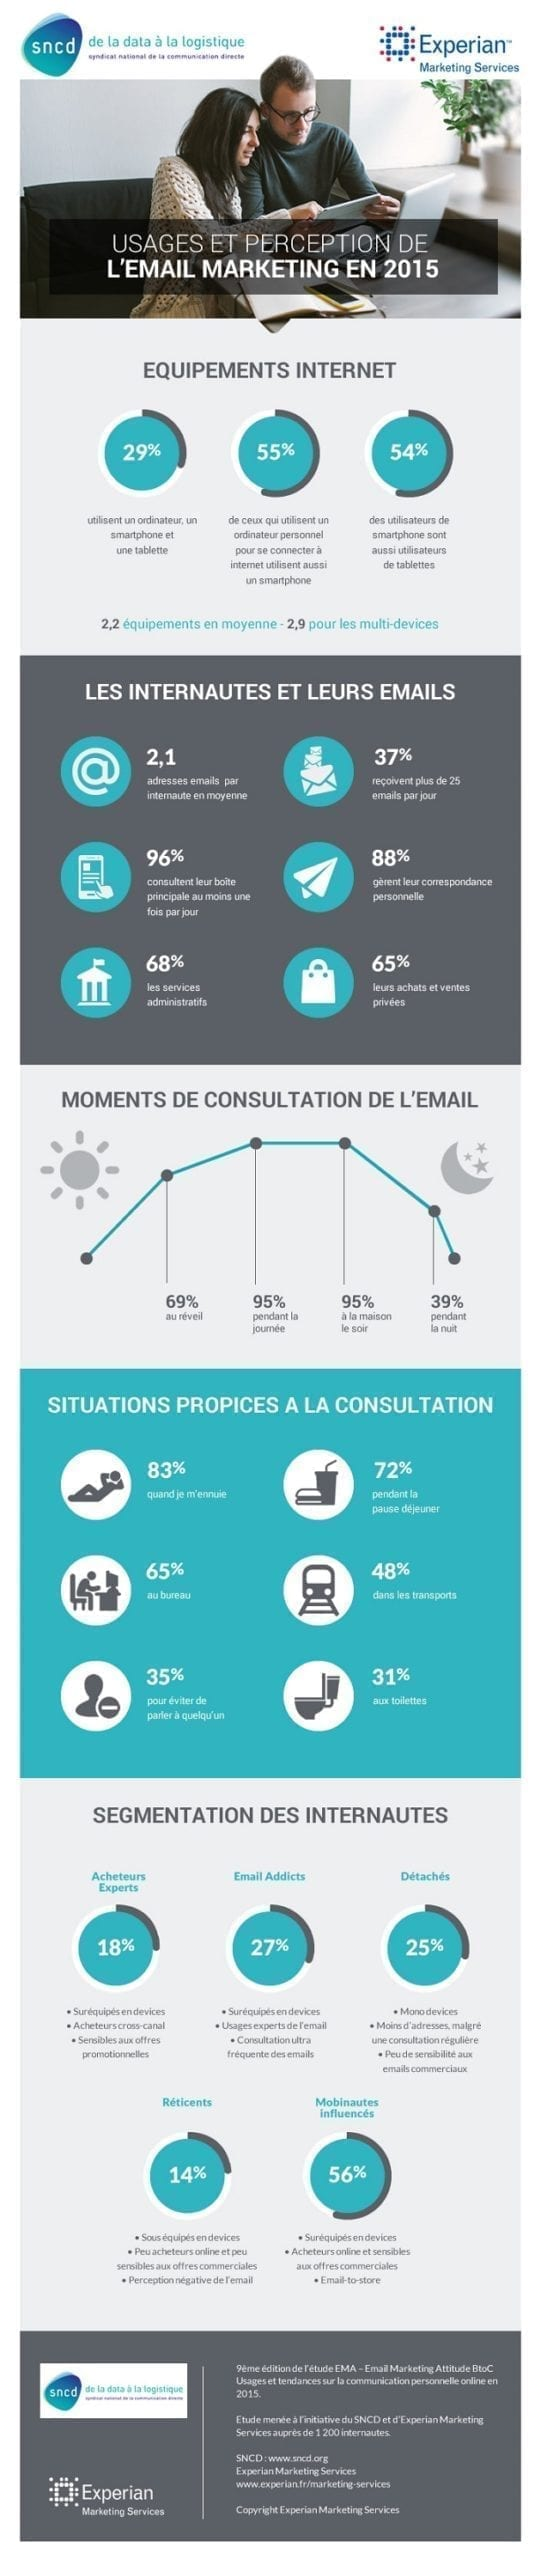 infographie-sncd-email-marketing-ema-2015